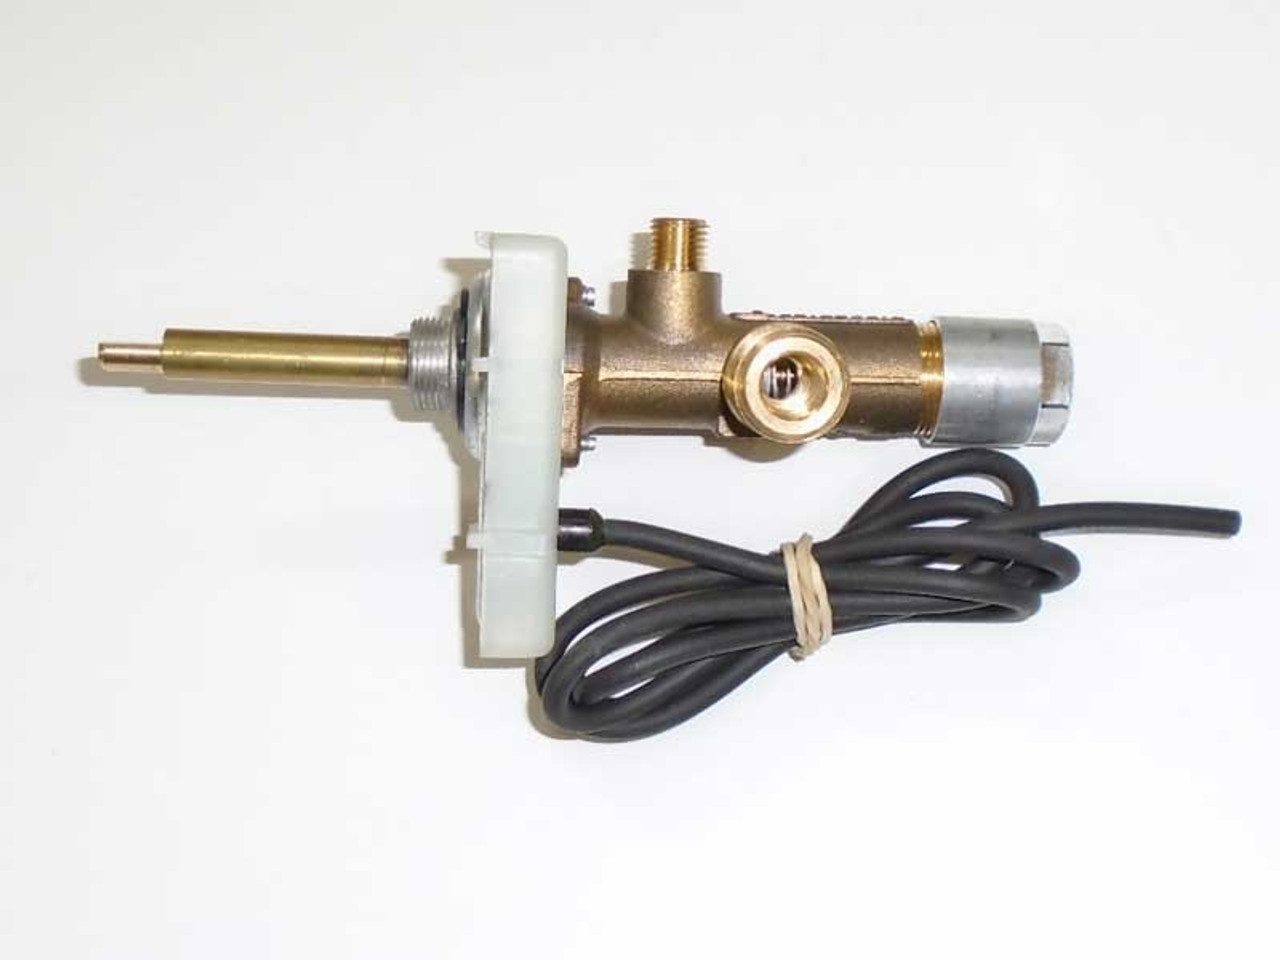 FMI Gas Fireplace Manual Valve with Ignitor - LP - 122142-02